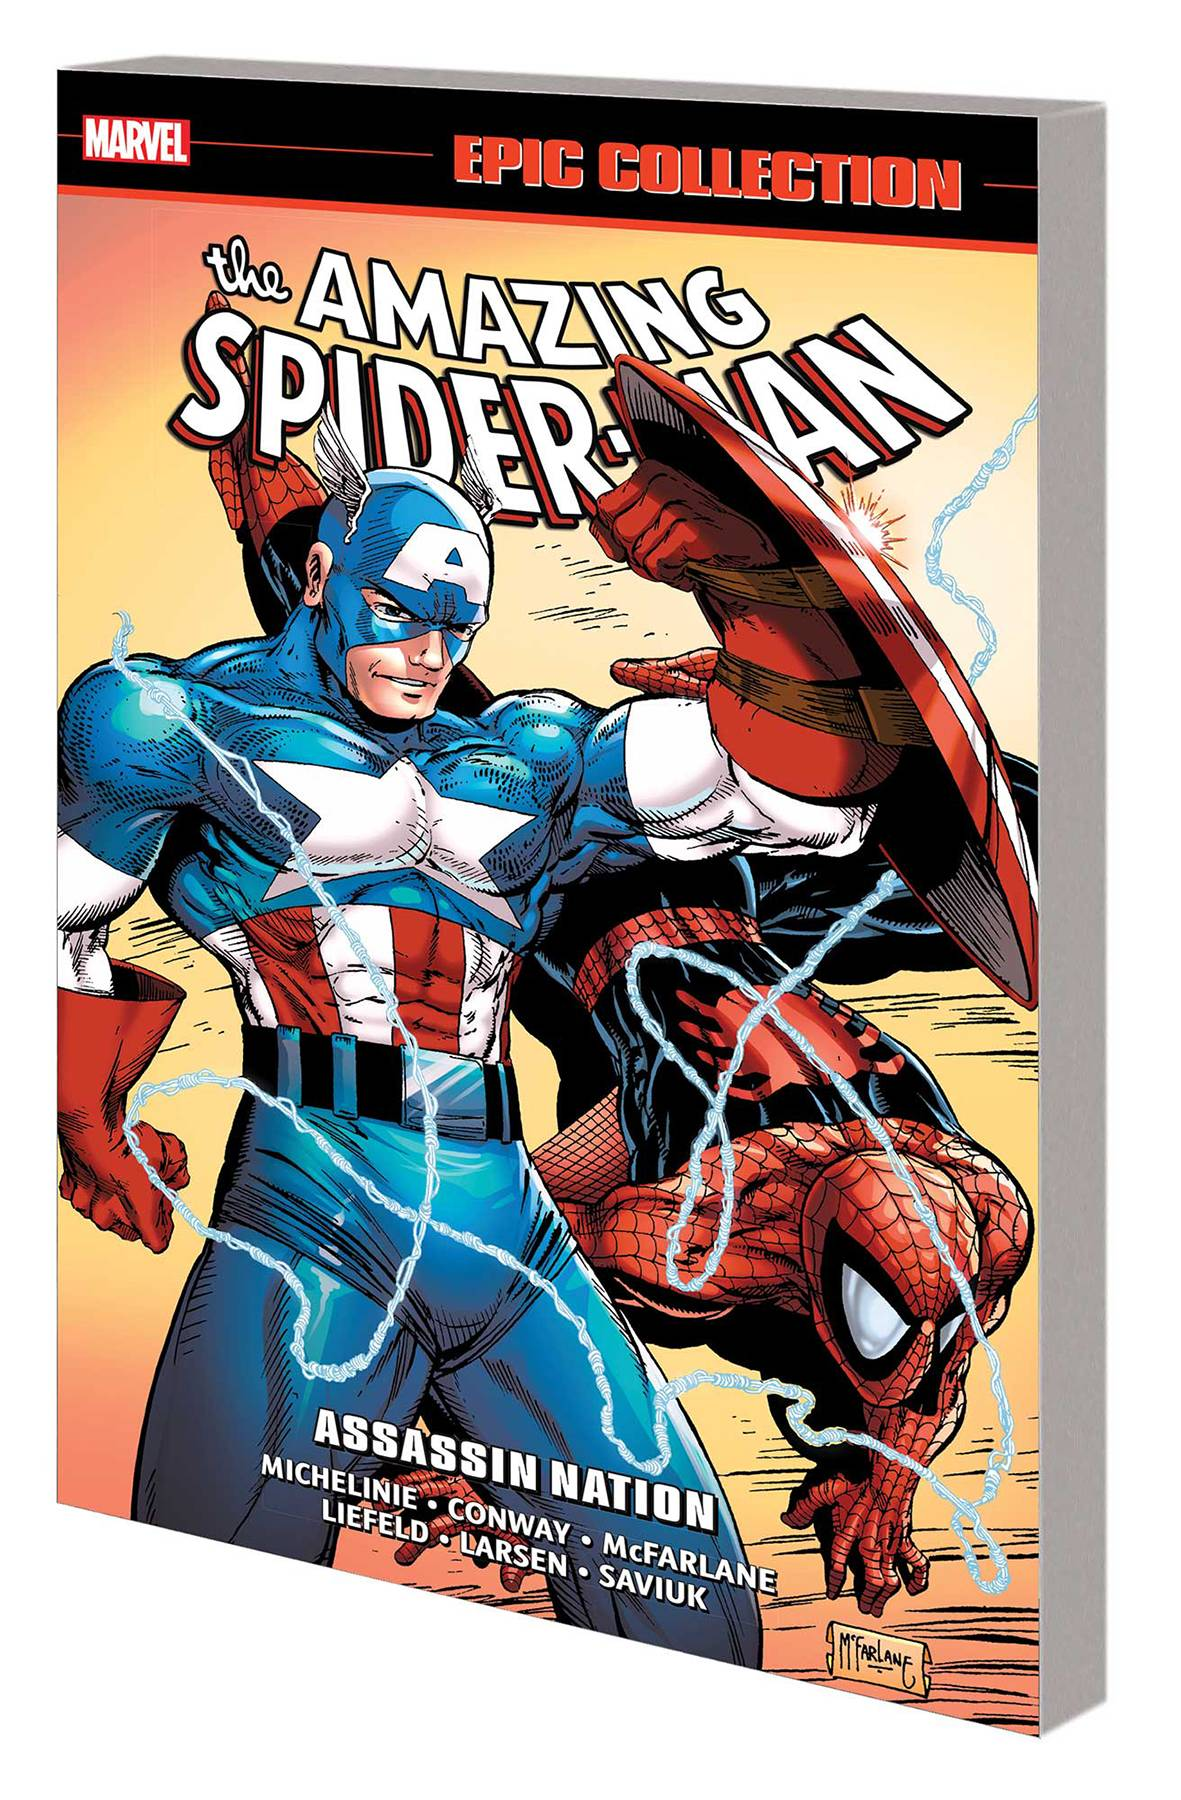 AMAZING SPIDER-MAN EPIC COLLECTION TP ASSASSIN NATION.jpg